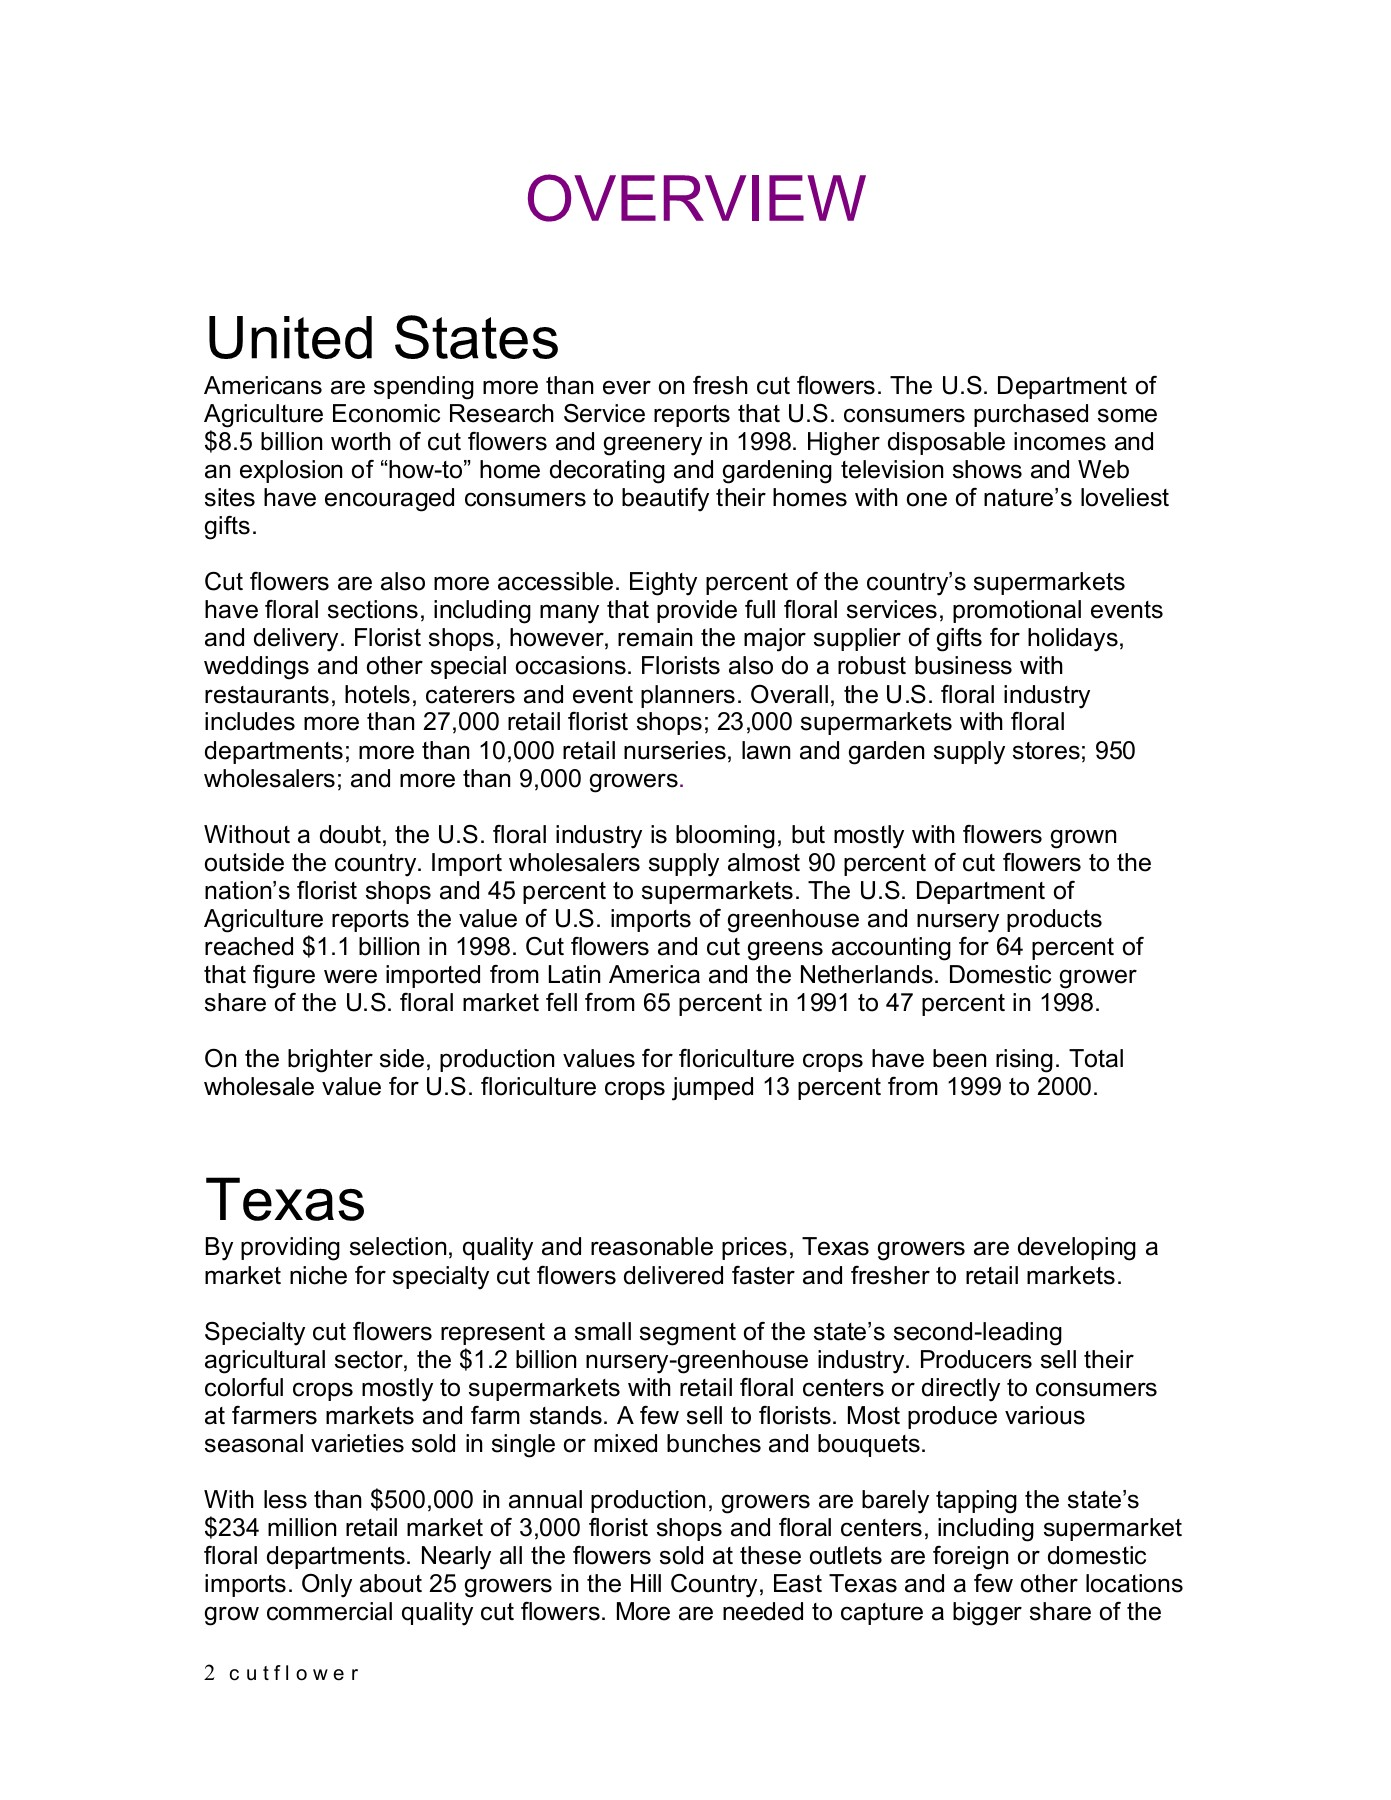 Cut Flower Manual - GO TEXAN Pages 1 - 31 - Text Version